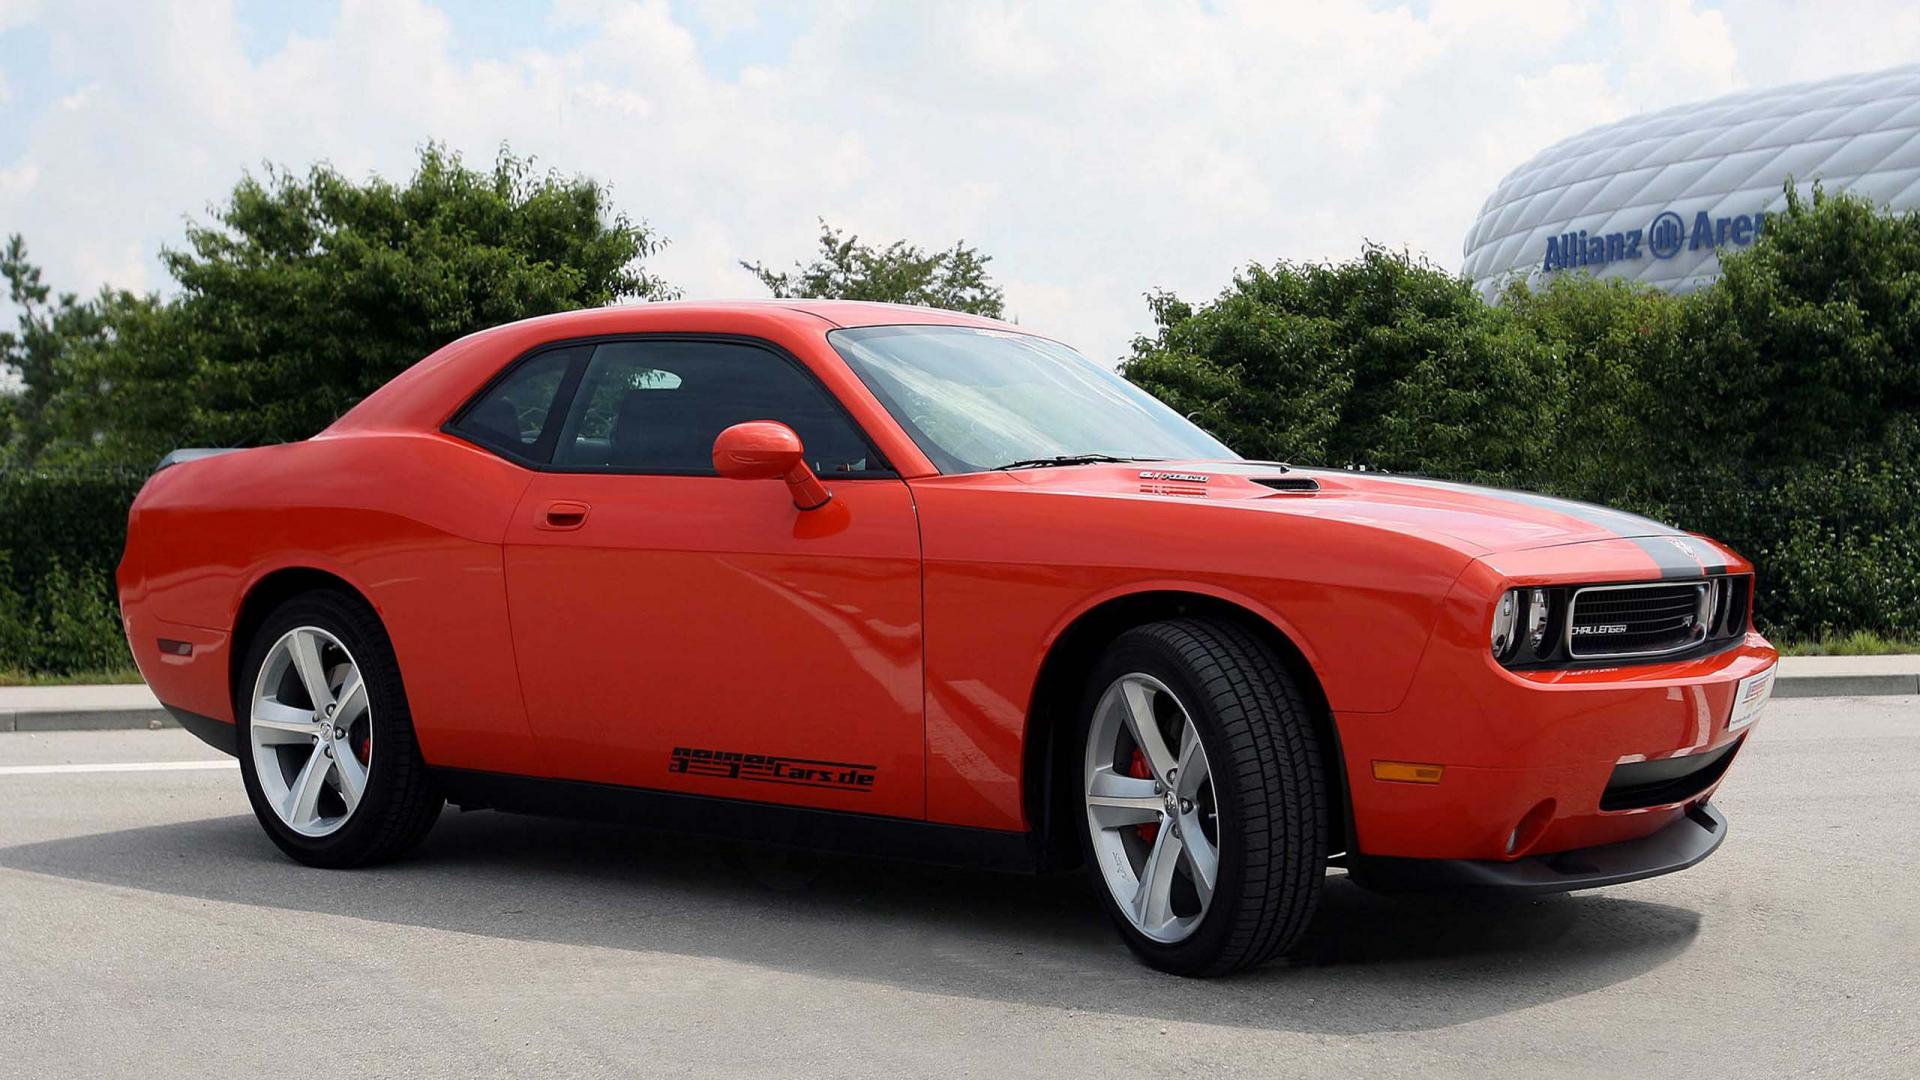 Dodge Challenger Srt8 wallpaper   341045 1920x1080